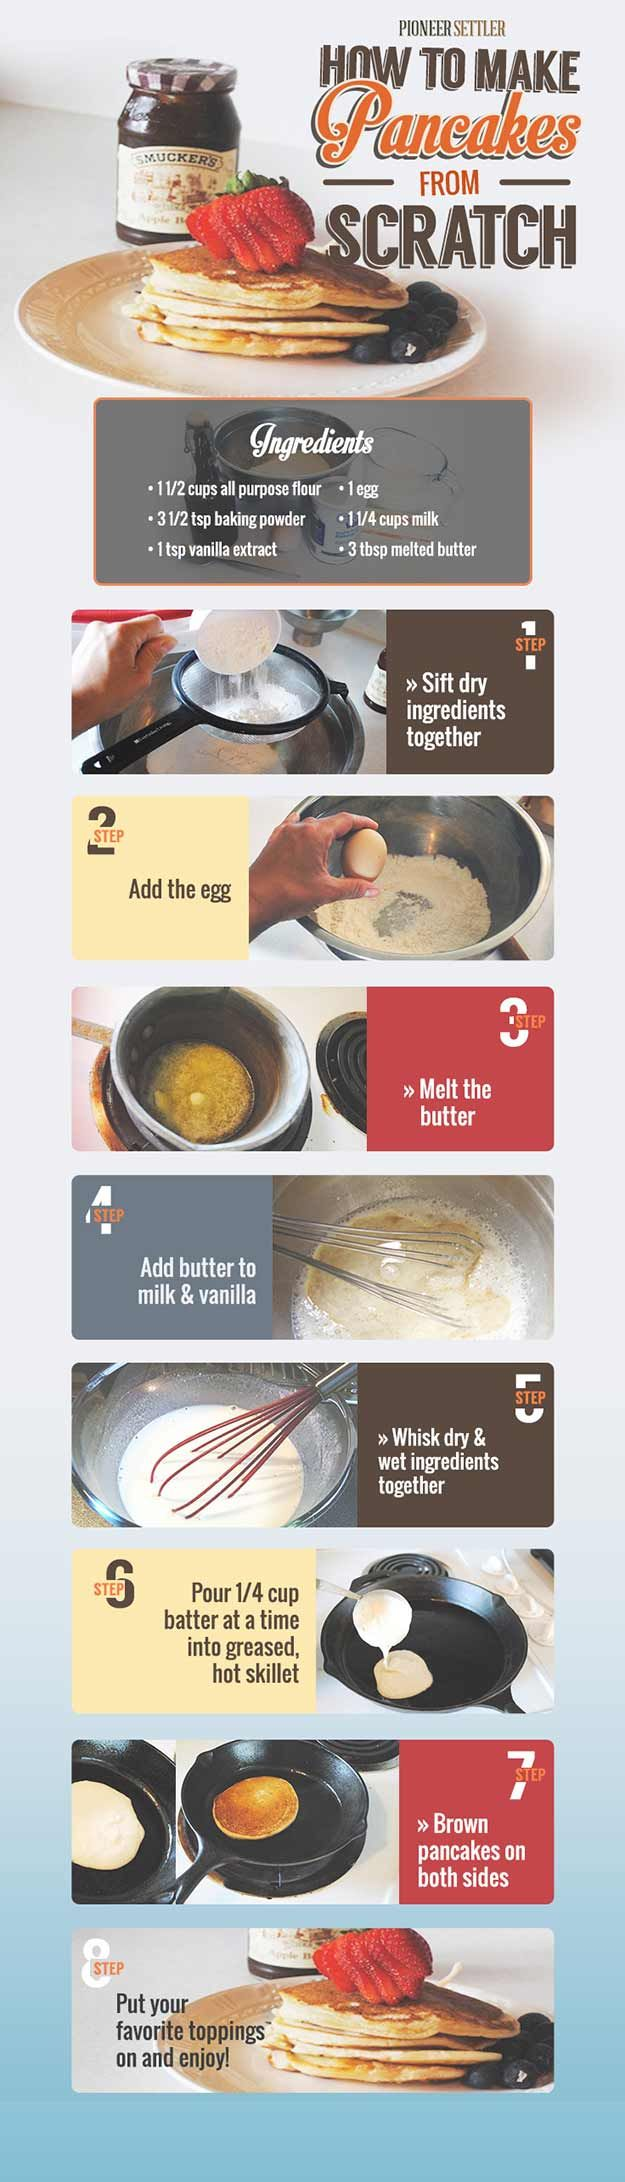 instructions on how to make pancakes